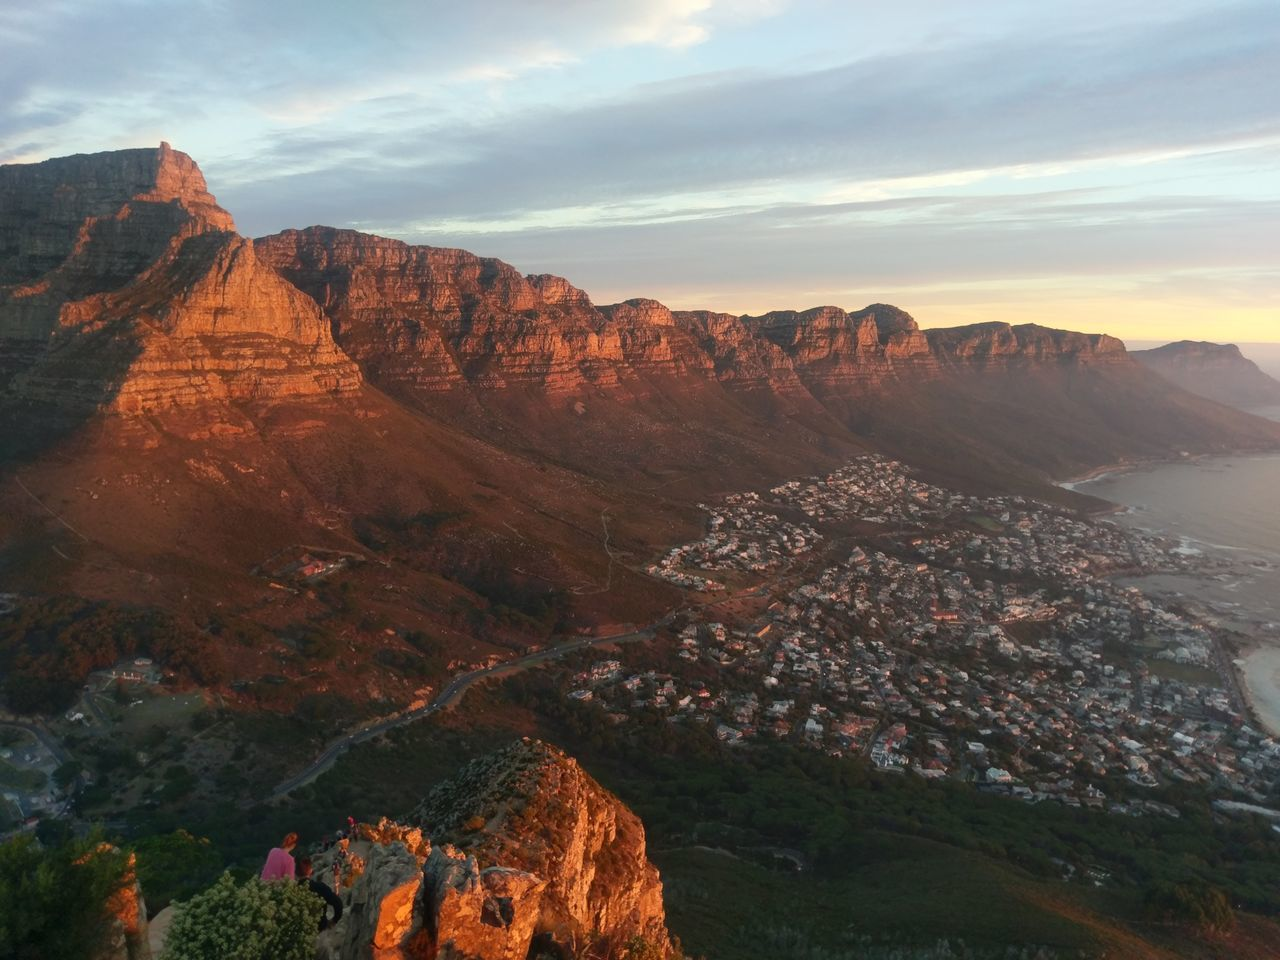 12 apostles from lions head at sunset, cape town, south africa Sunset Mountain Nature Landscape Sky Outdoors Scenics Beauty In Nature Red Nature Cape Town, South Africa Cape Town Capetown Lions Head Lionshead Night Beauty Travel Destinations The City Light EyeEmNewHere Miles Away